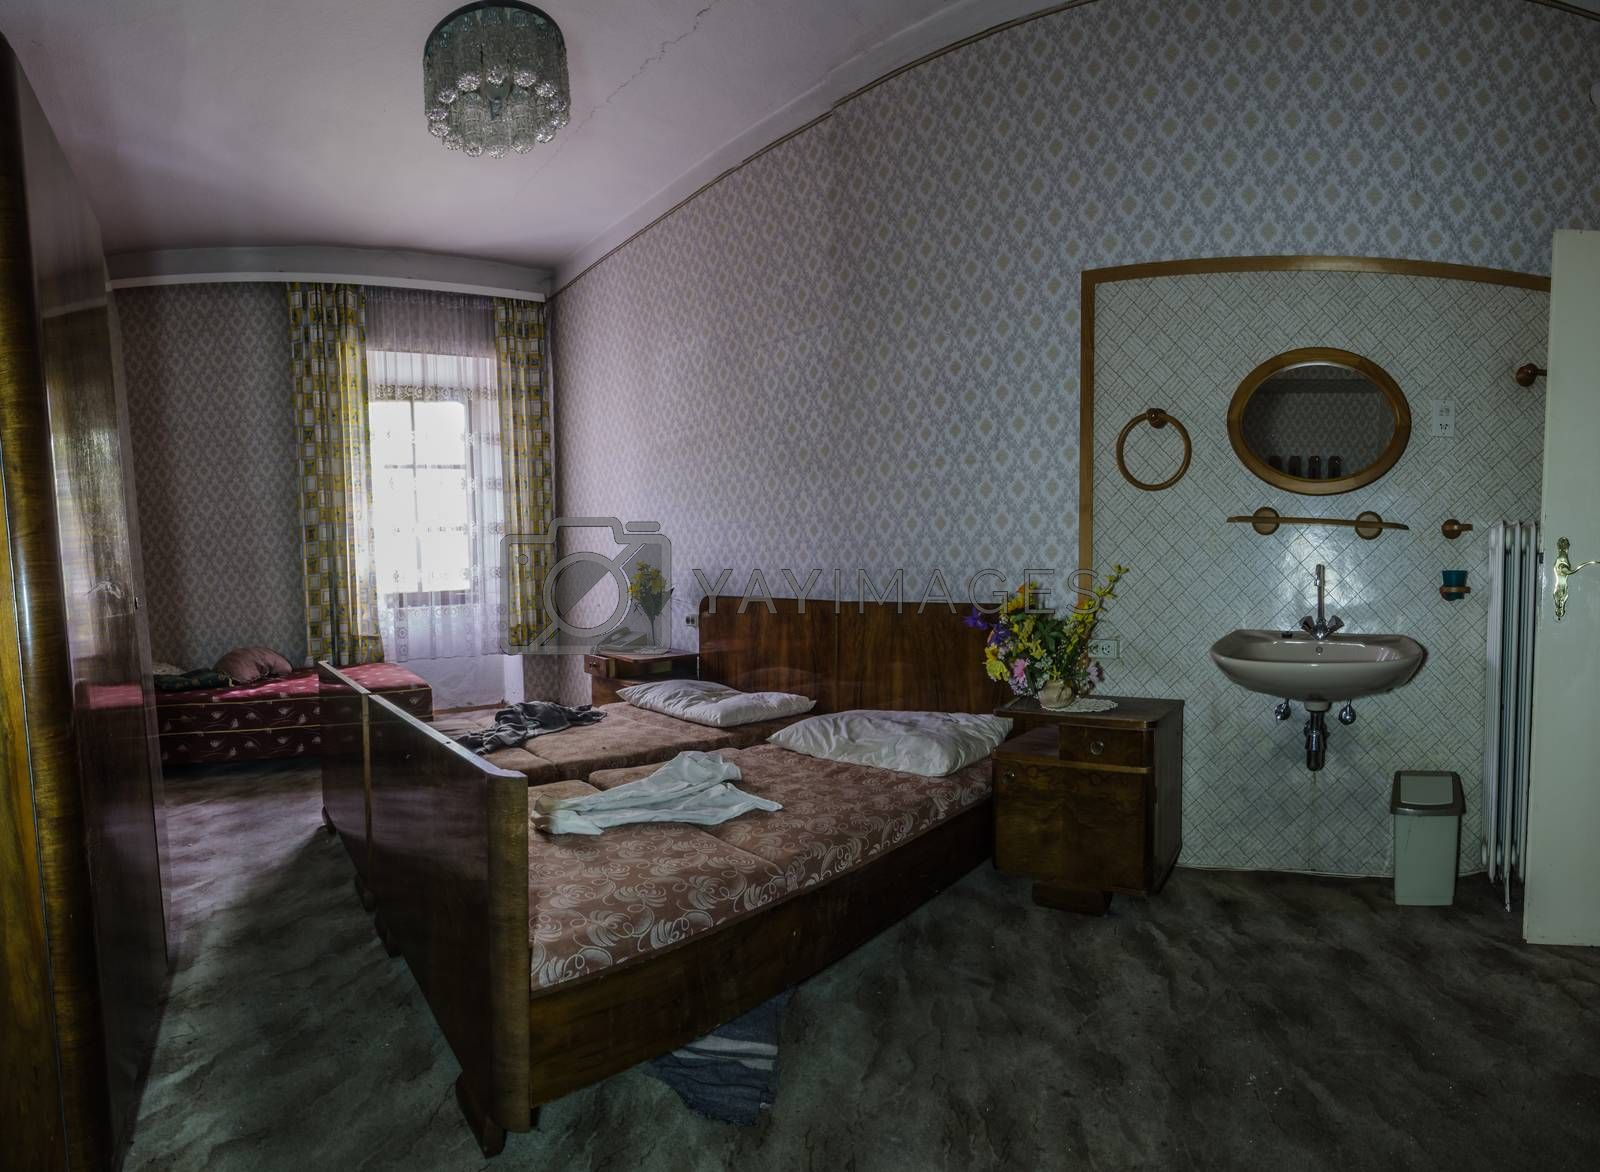 room with bed and mirror in a hotel panorama by thomaseder